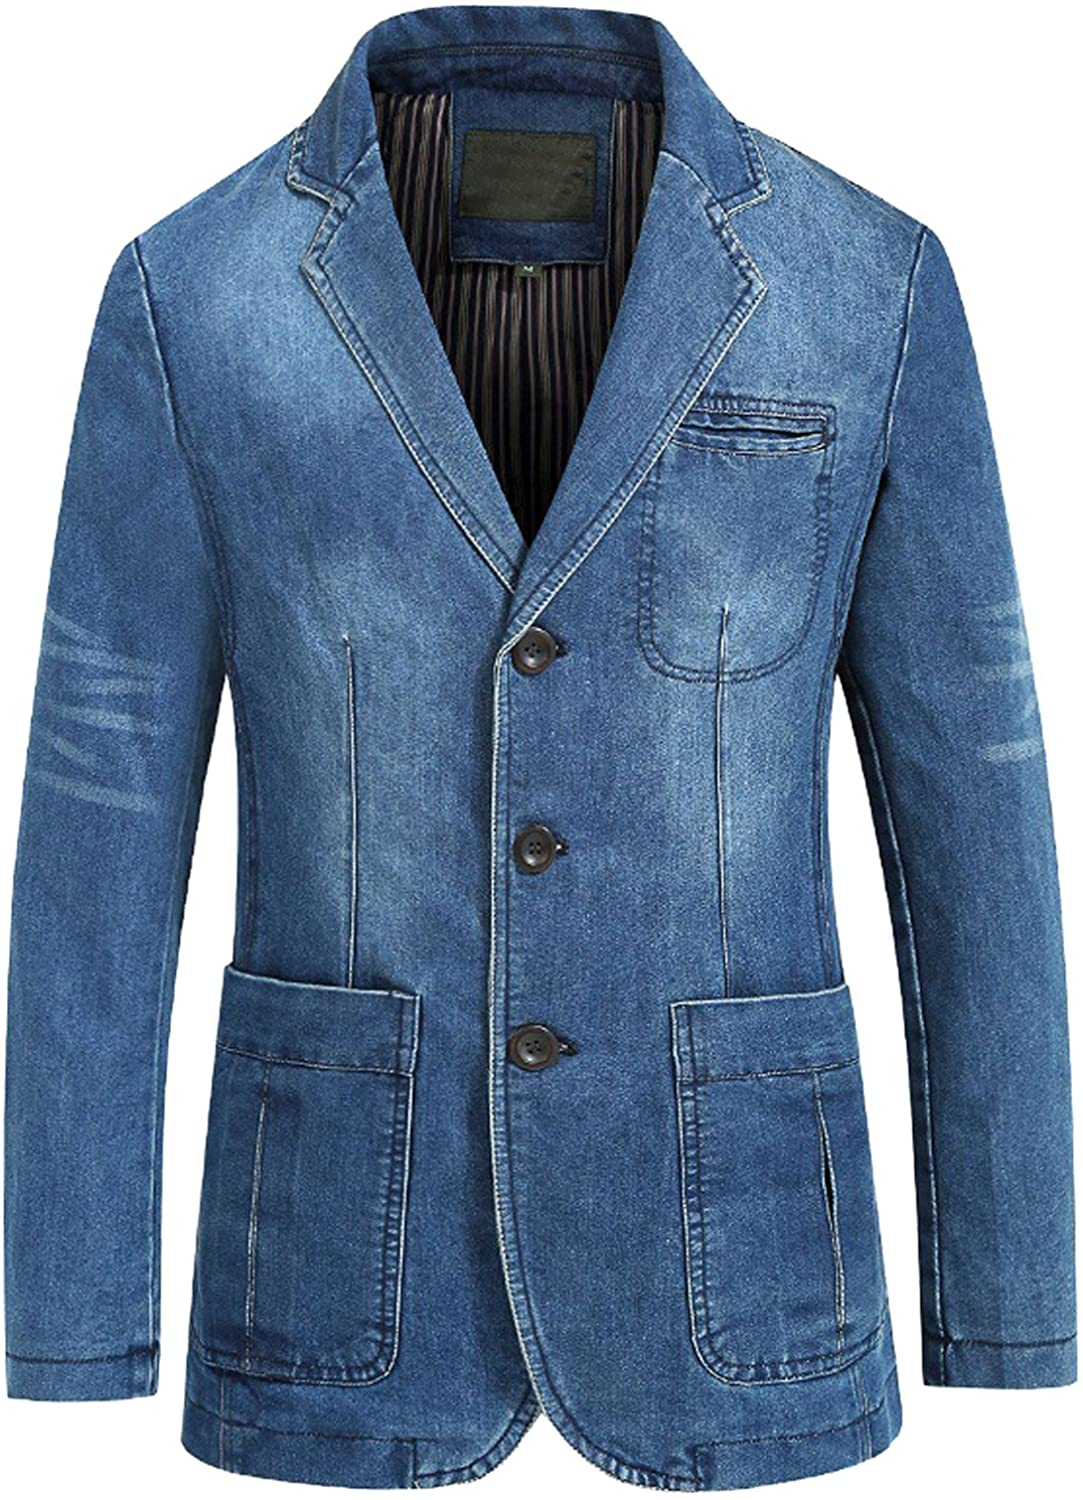 chouyatou Men's Classic Notched Collar 3 Button Tailoring Distressed Denim Blazer Jacket at  Men's Clothing store